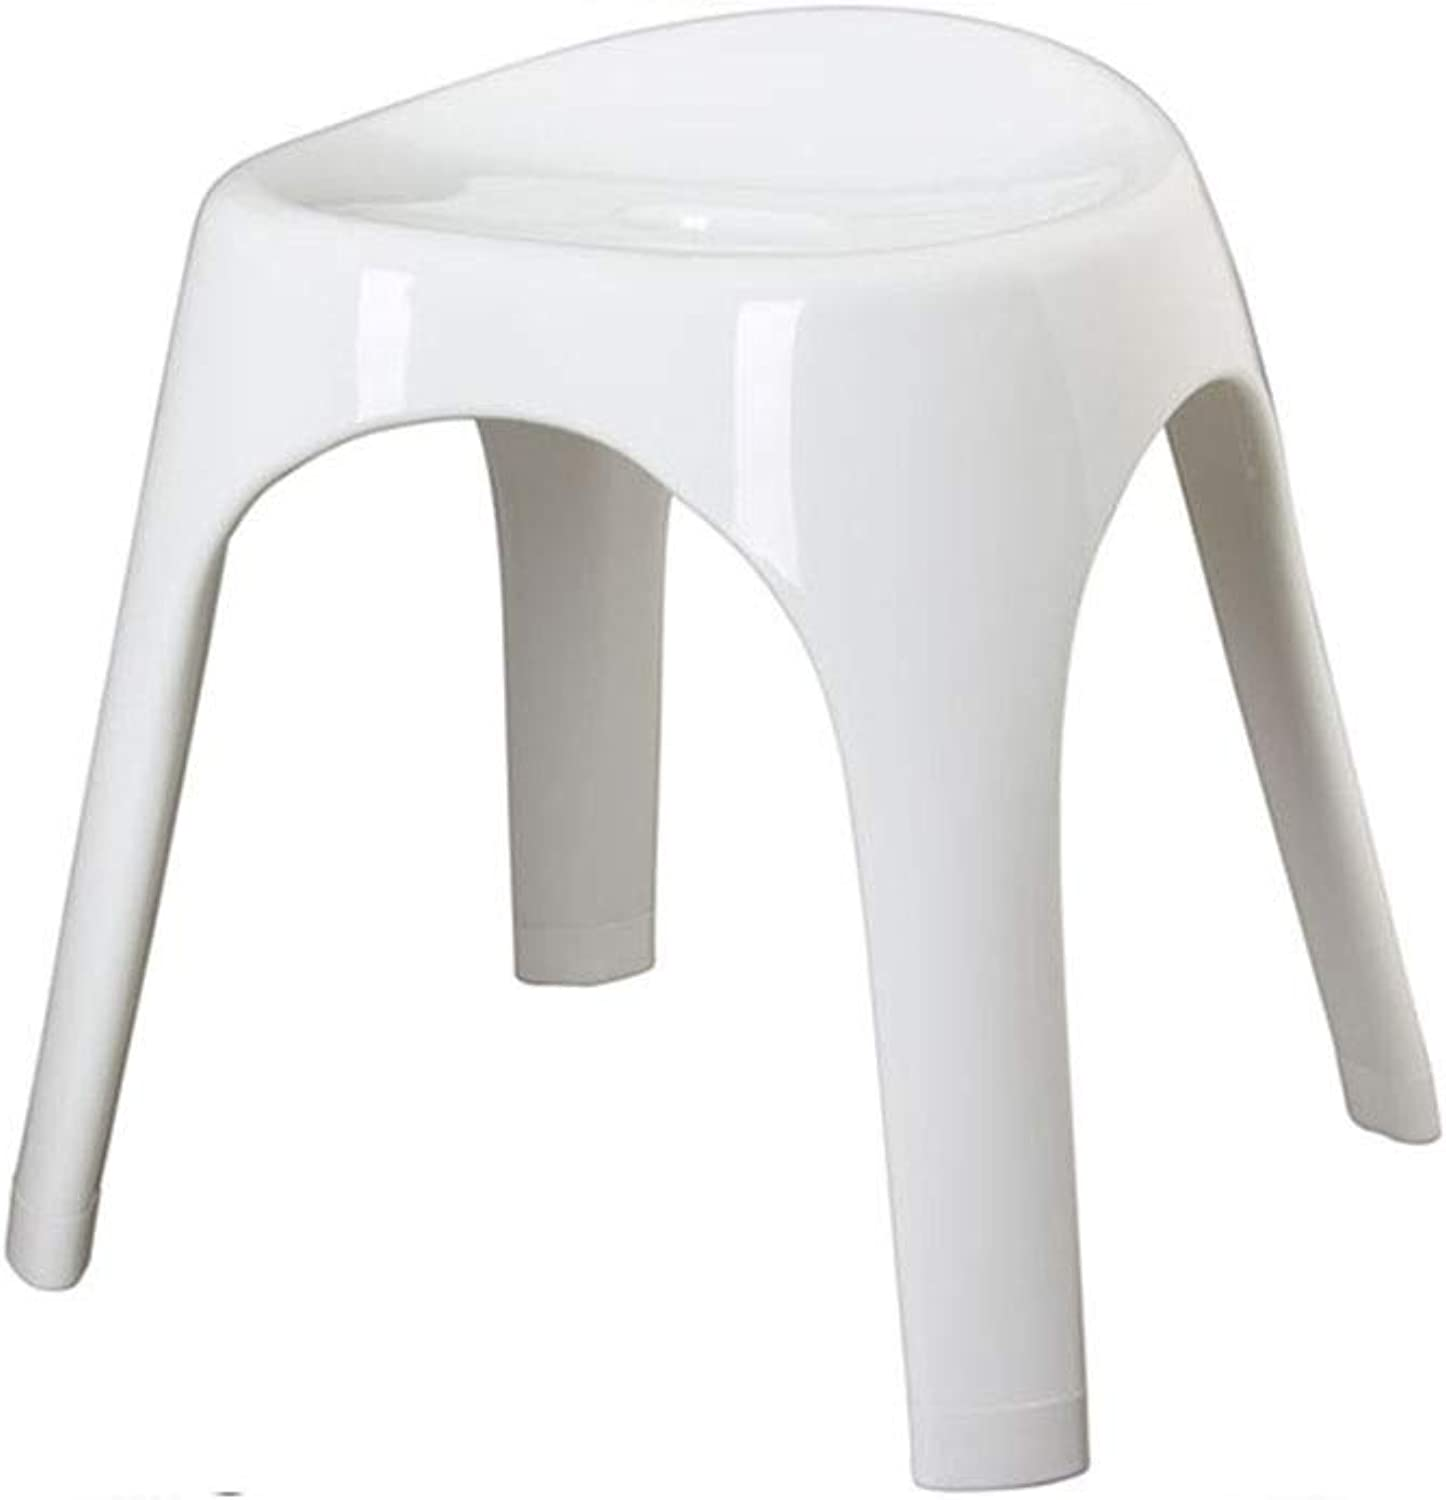 AGL-Bathroom Stools Low Stool Multipurpose Plastic Thicken Non-Slip Portable Fashion Creative Bathroom Bathing Change shoes ,White (color   White, Size   40.5X35X38CM)